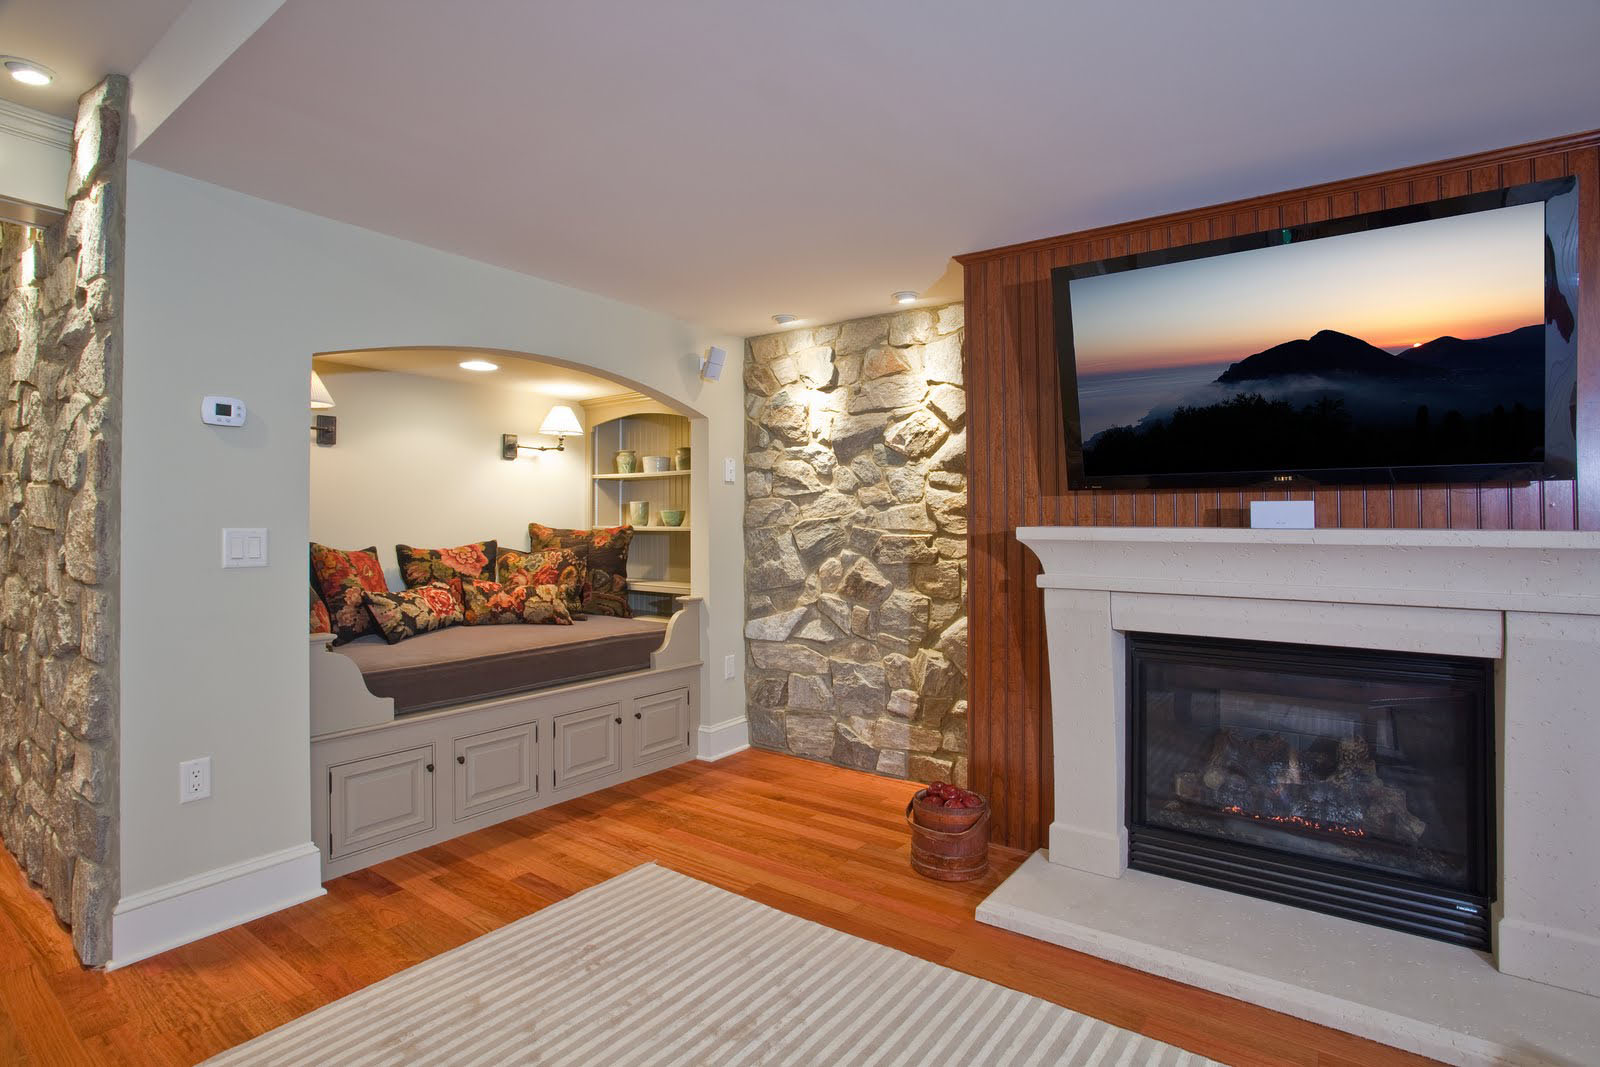 Residential Basement With Stone Walls. Sleeping Alcove In Basement